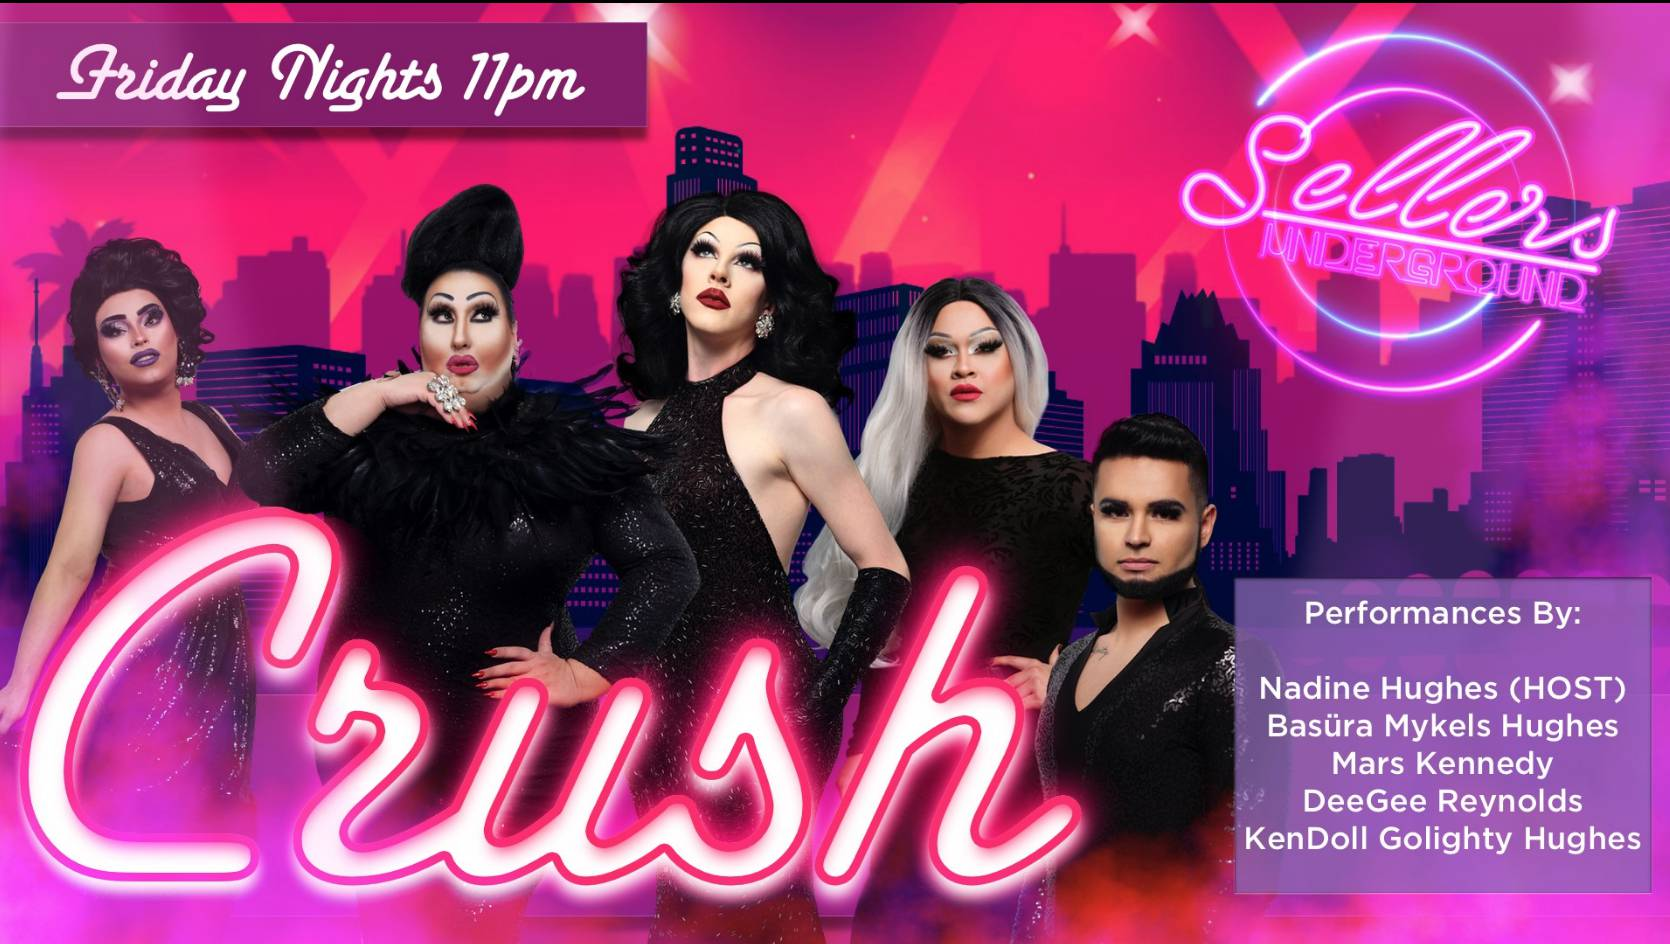 CRUSH Drag Show